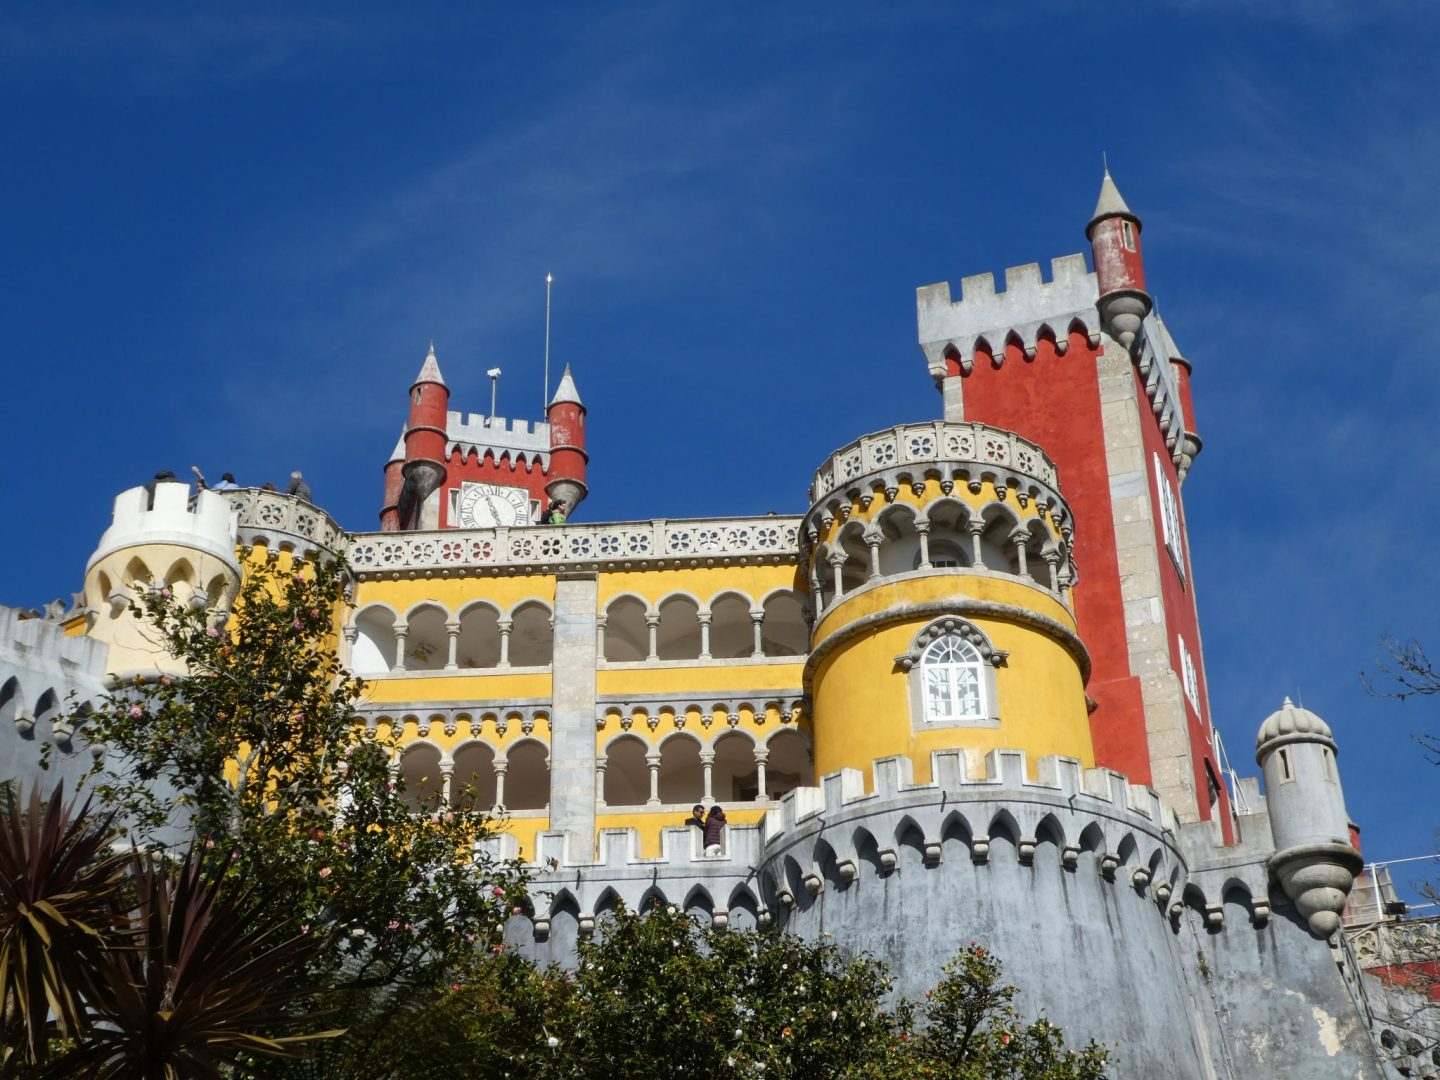 Sintra (25 to 28 February 2019)